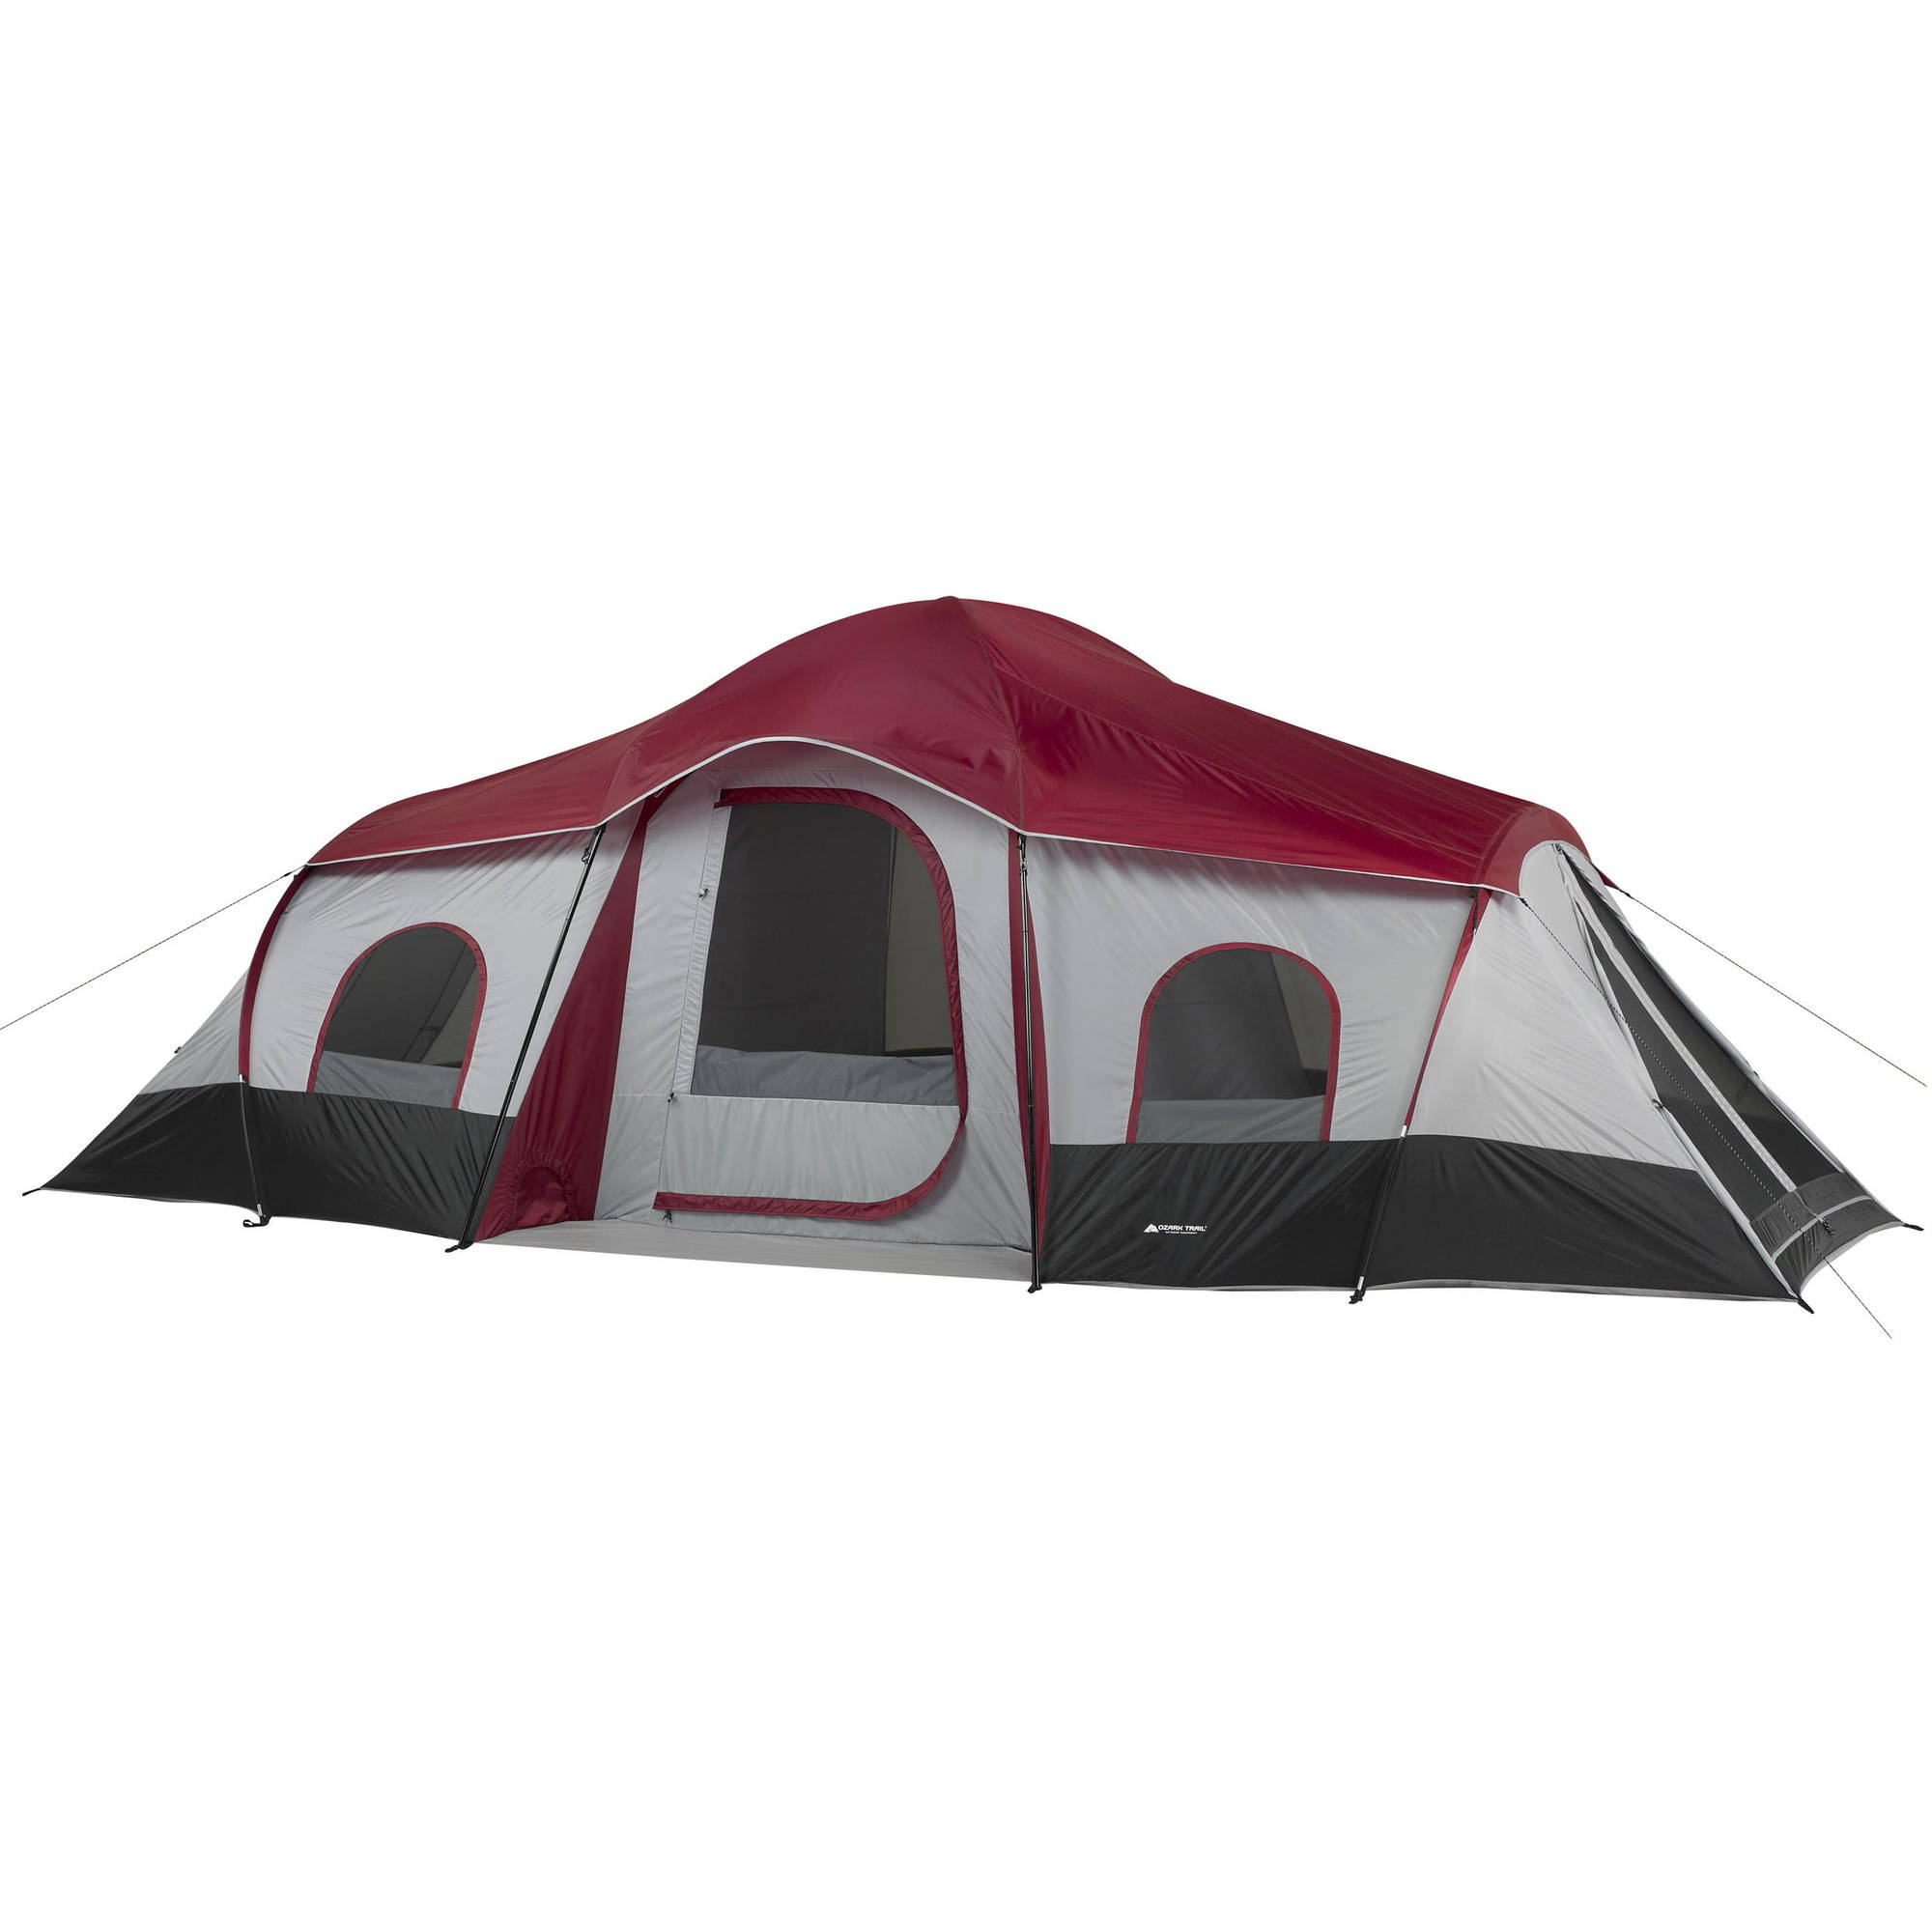 Ozark Trail 10-Person 3-Room Cabin Tent  sc 1 st  Walmart & Ozark Trail 10-Person 3-Room Cabin Tent - Walmart.com